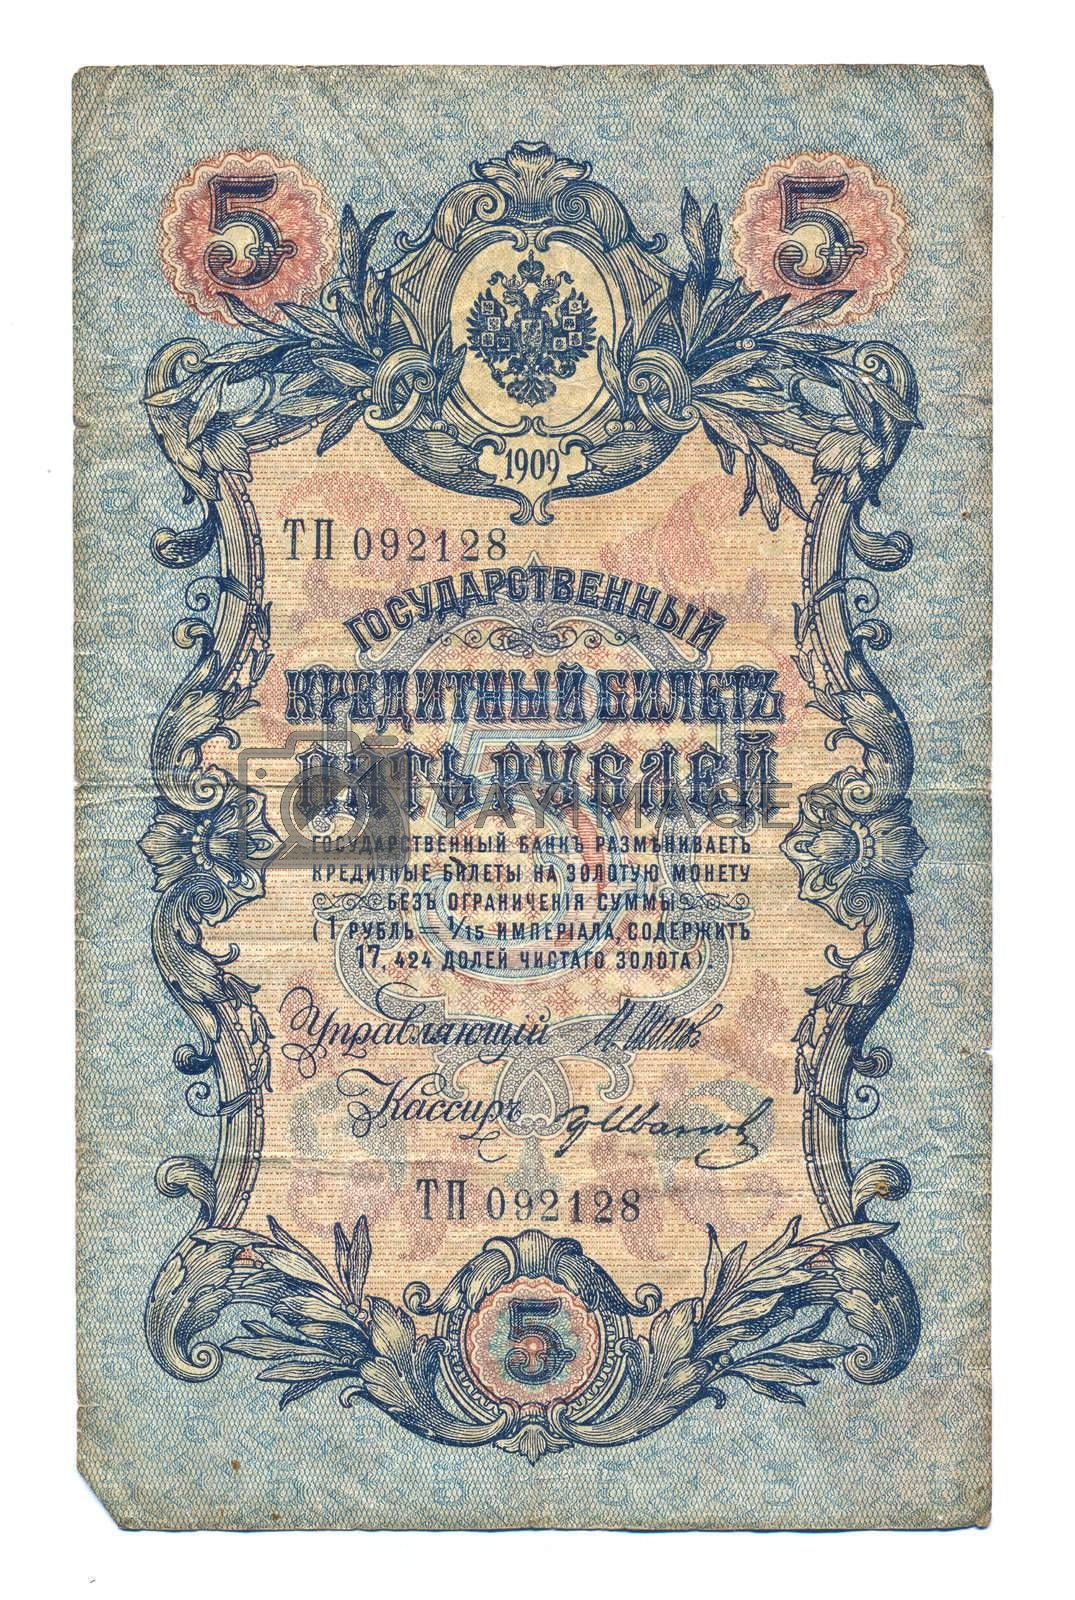 The scanned monetary denomination which is a museum piece, advantage in 5 roubles, let out at the time of Imperial Russia